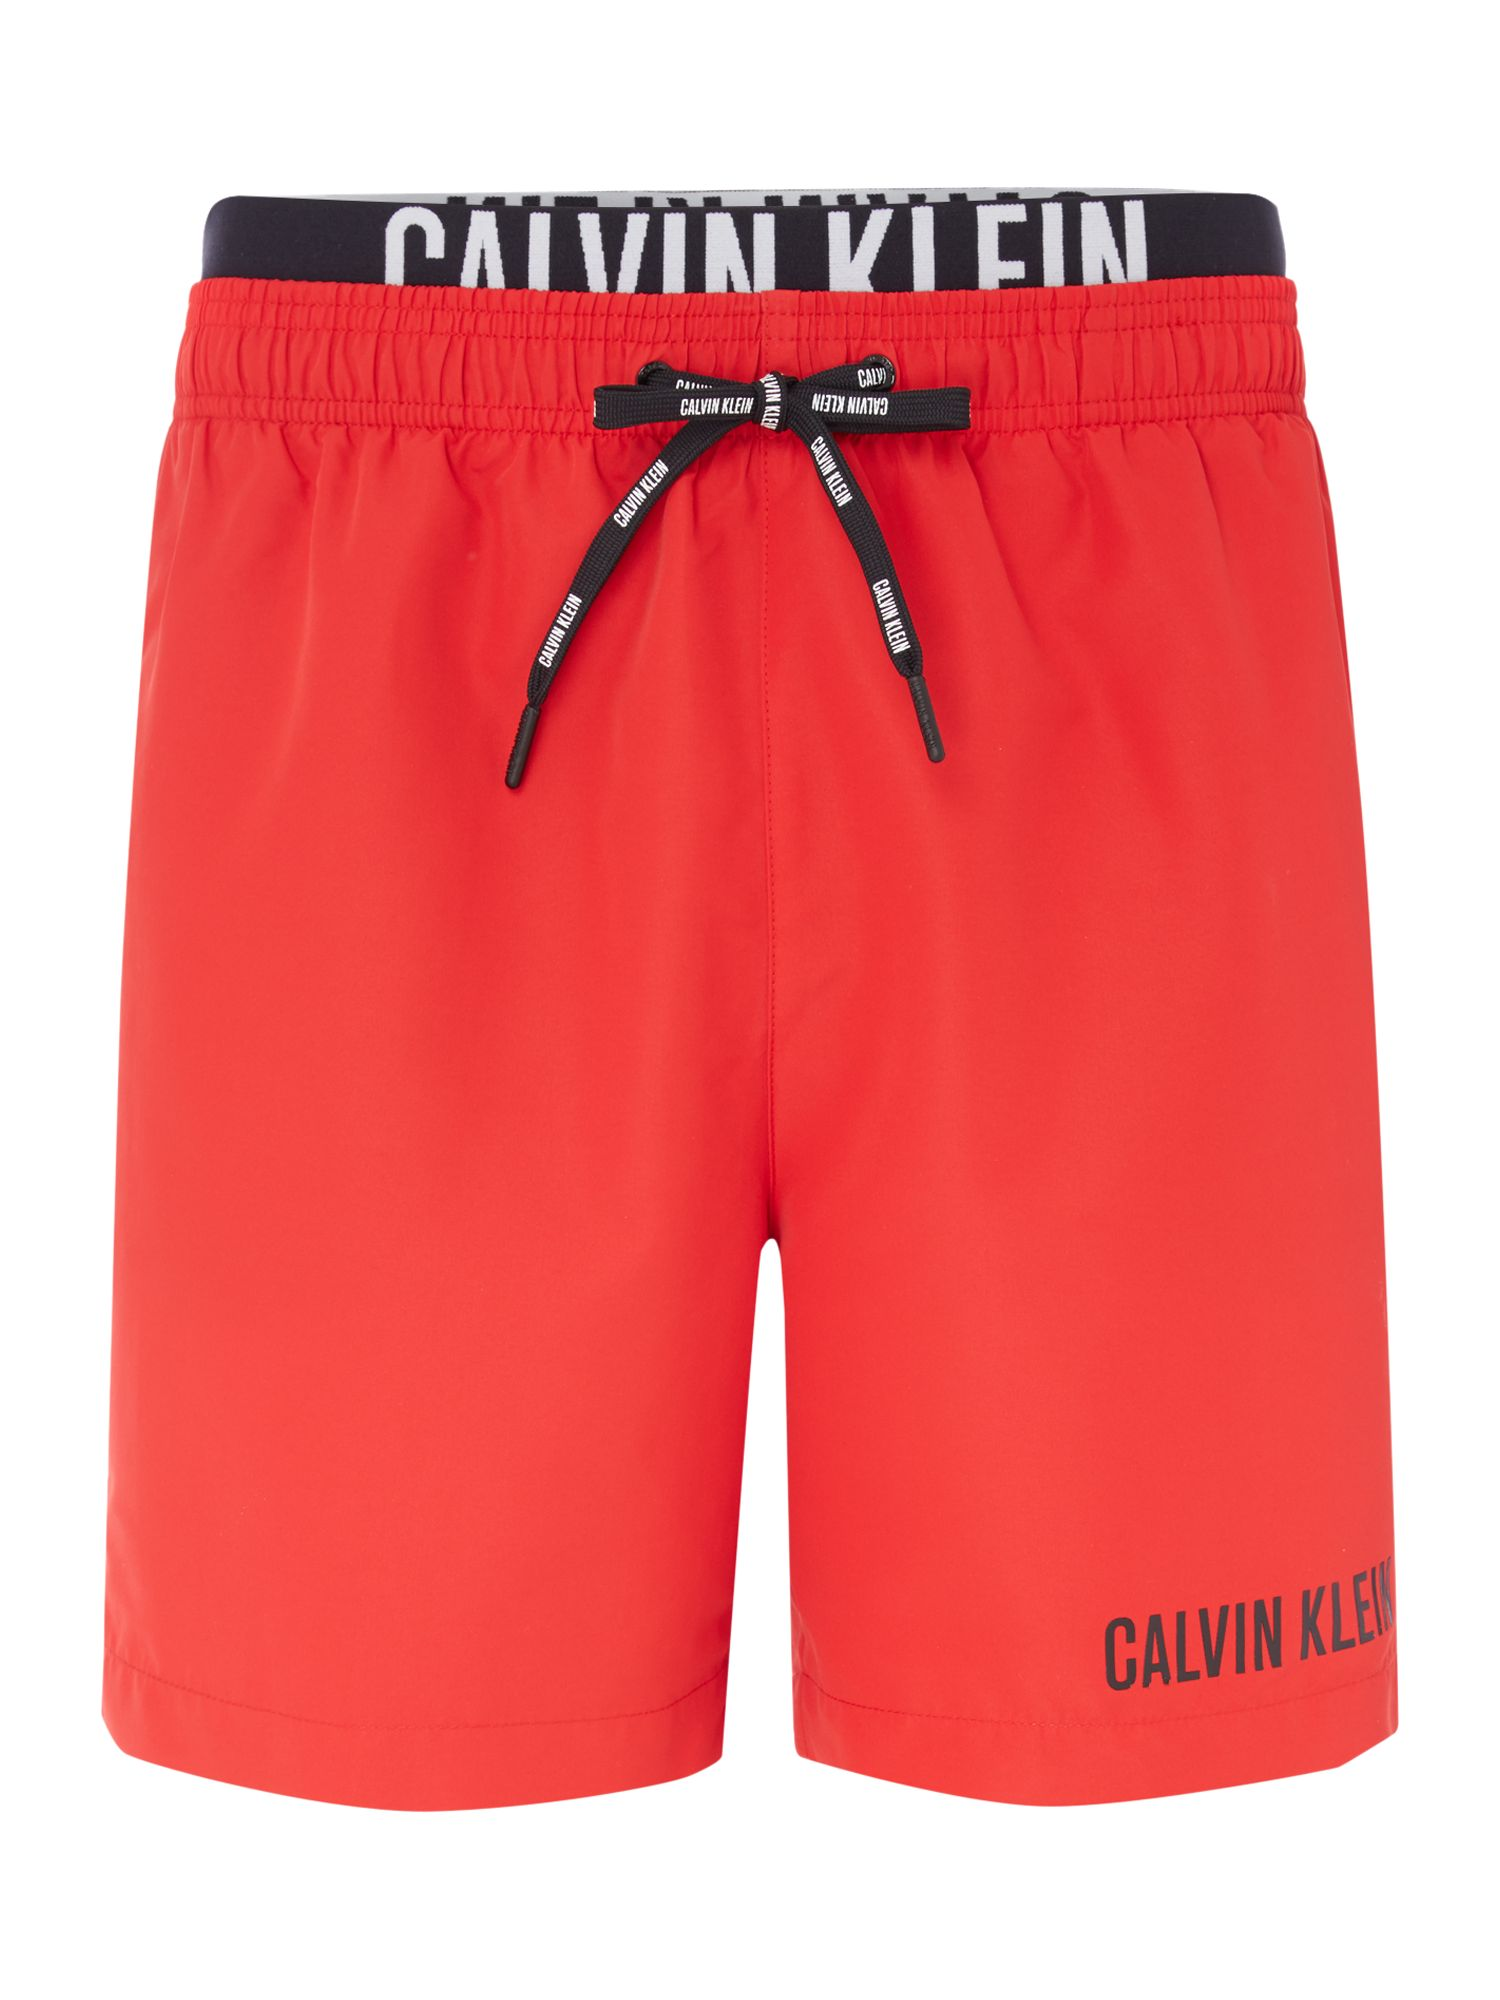 Men's Calvin Klein Double Waistband Swim shorts, Red